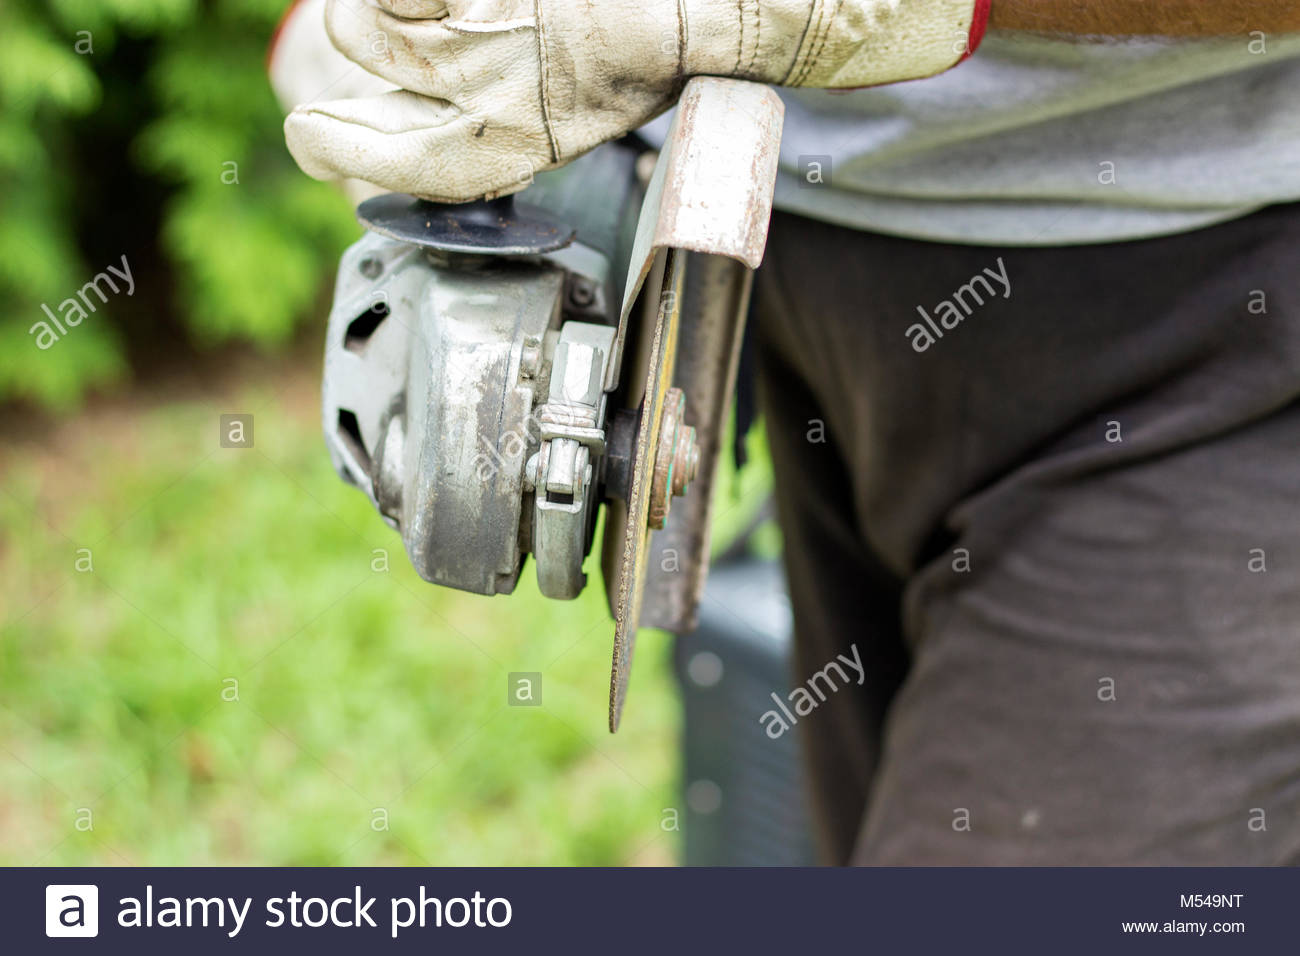 Construction worker using an angle grinder cutting tile - Stock Image